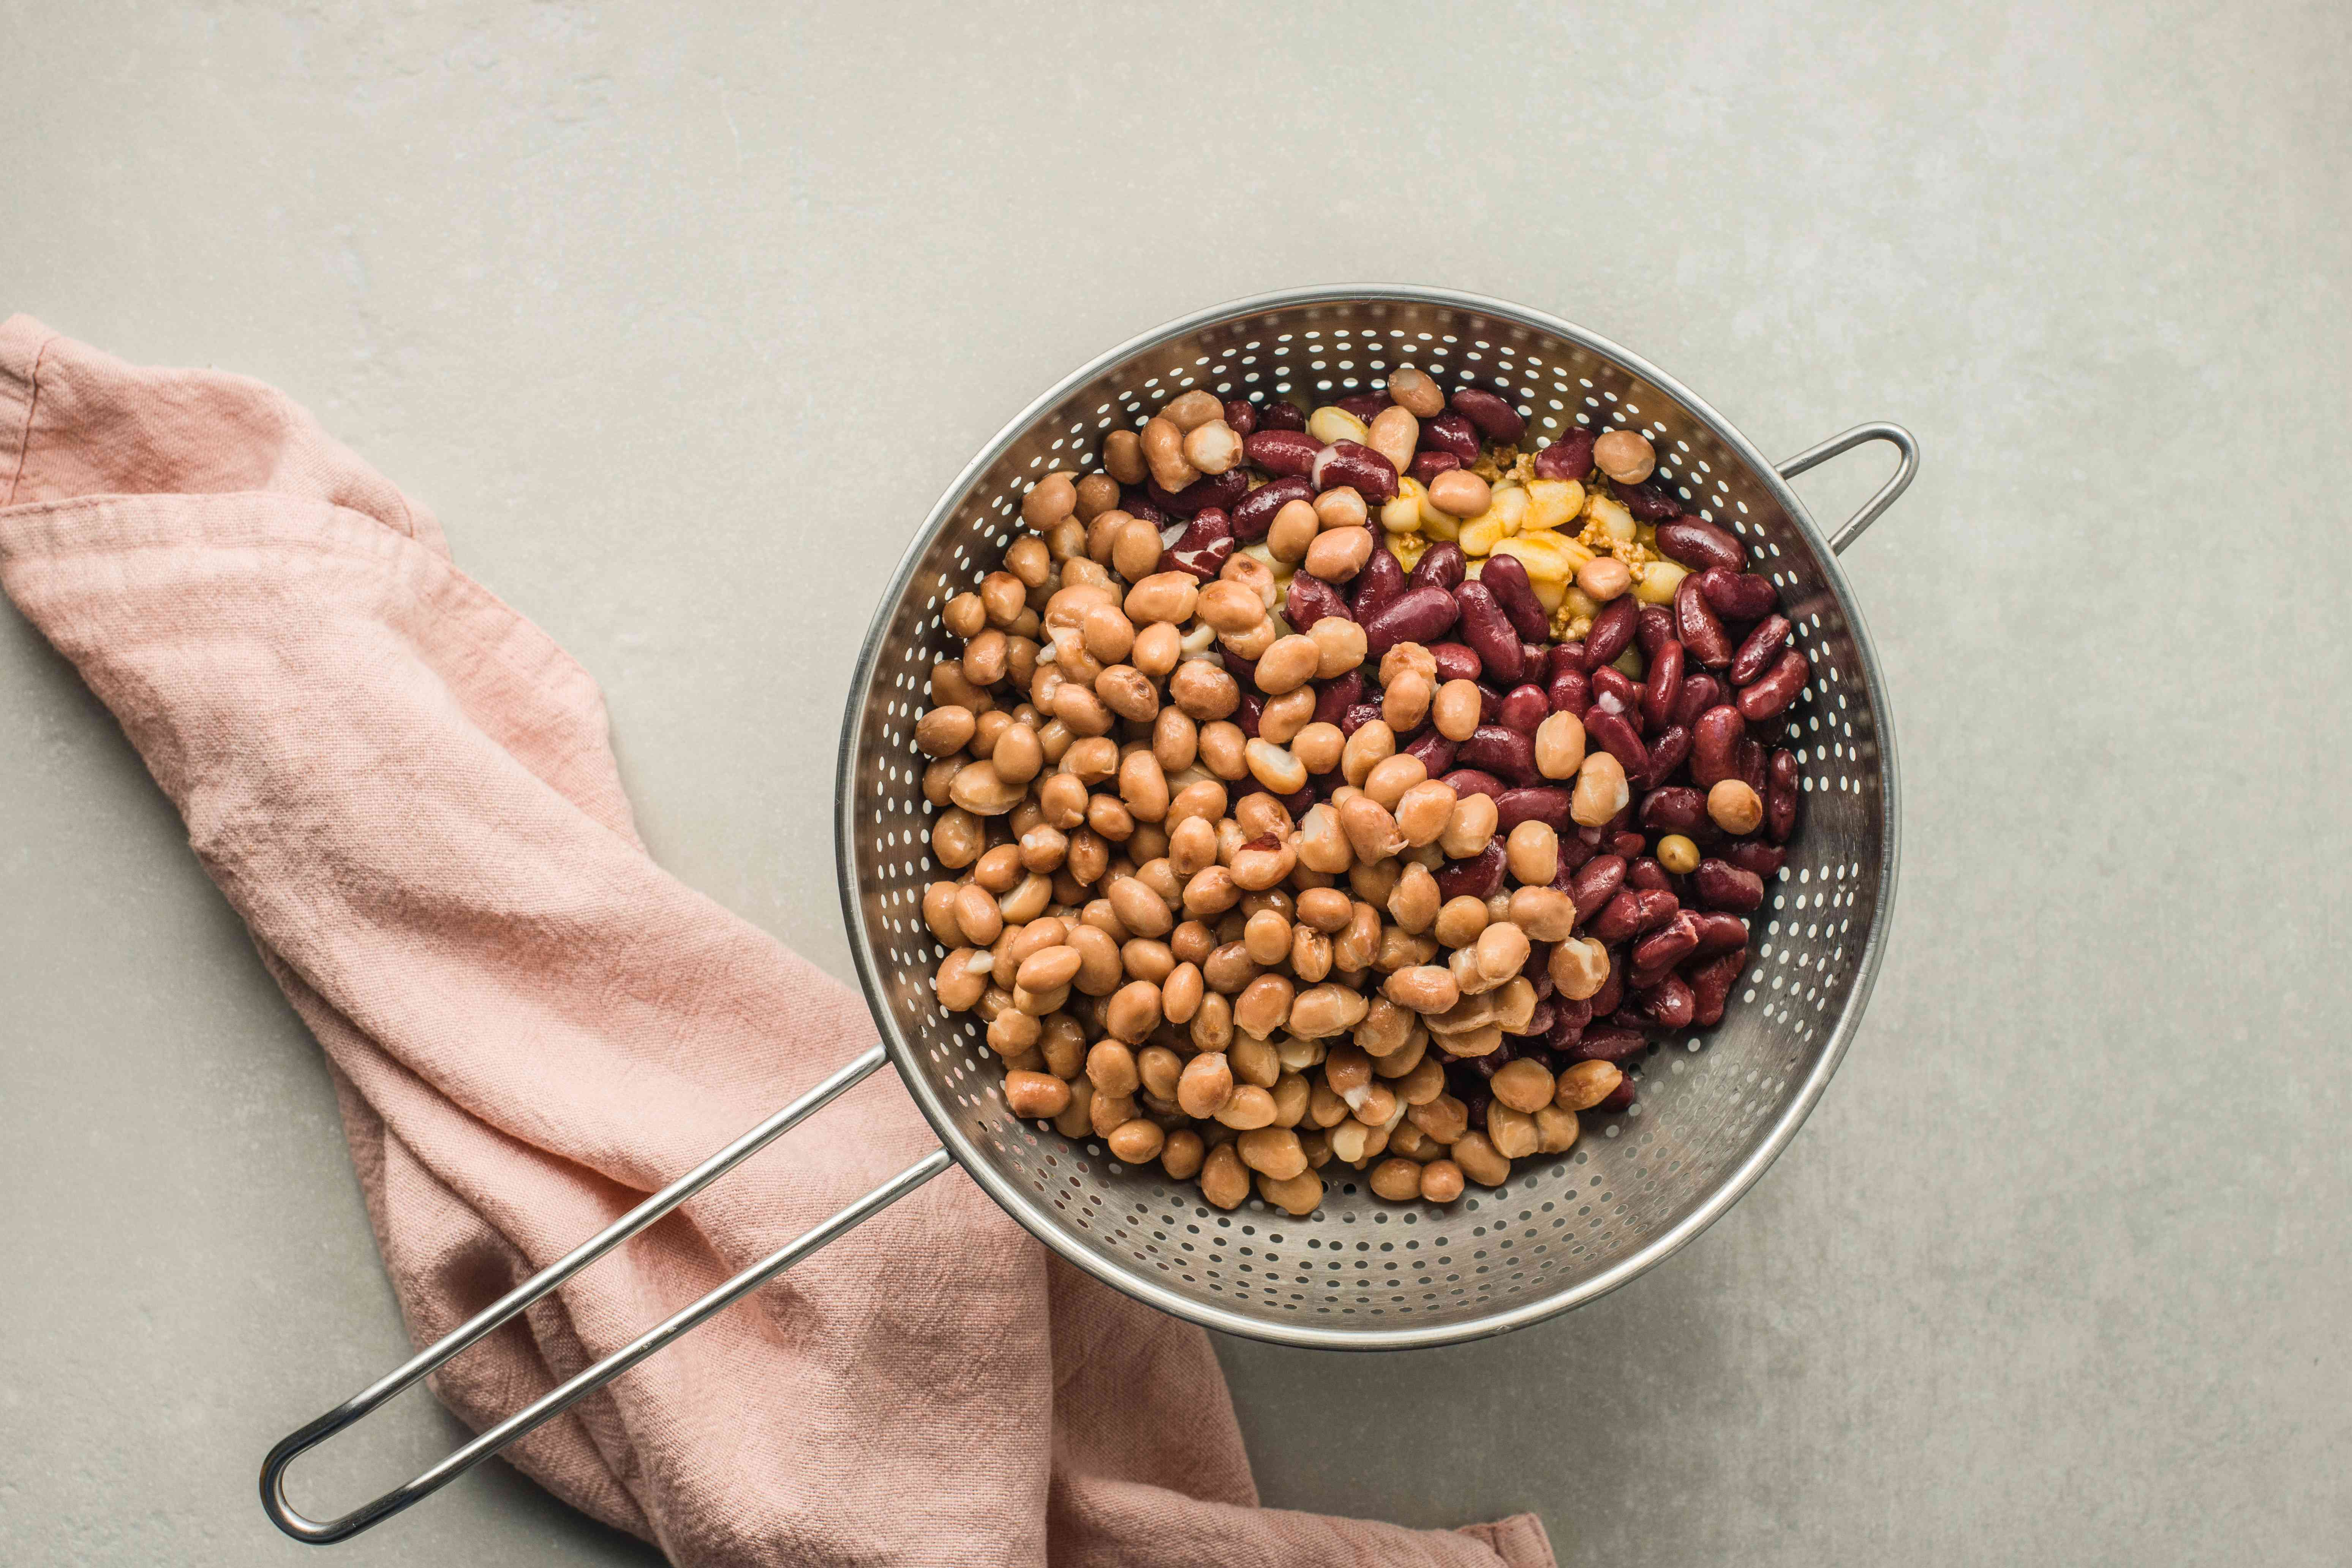 Drain canned beans